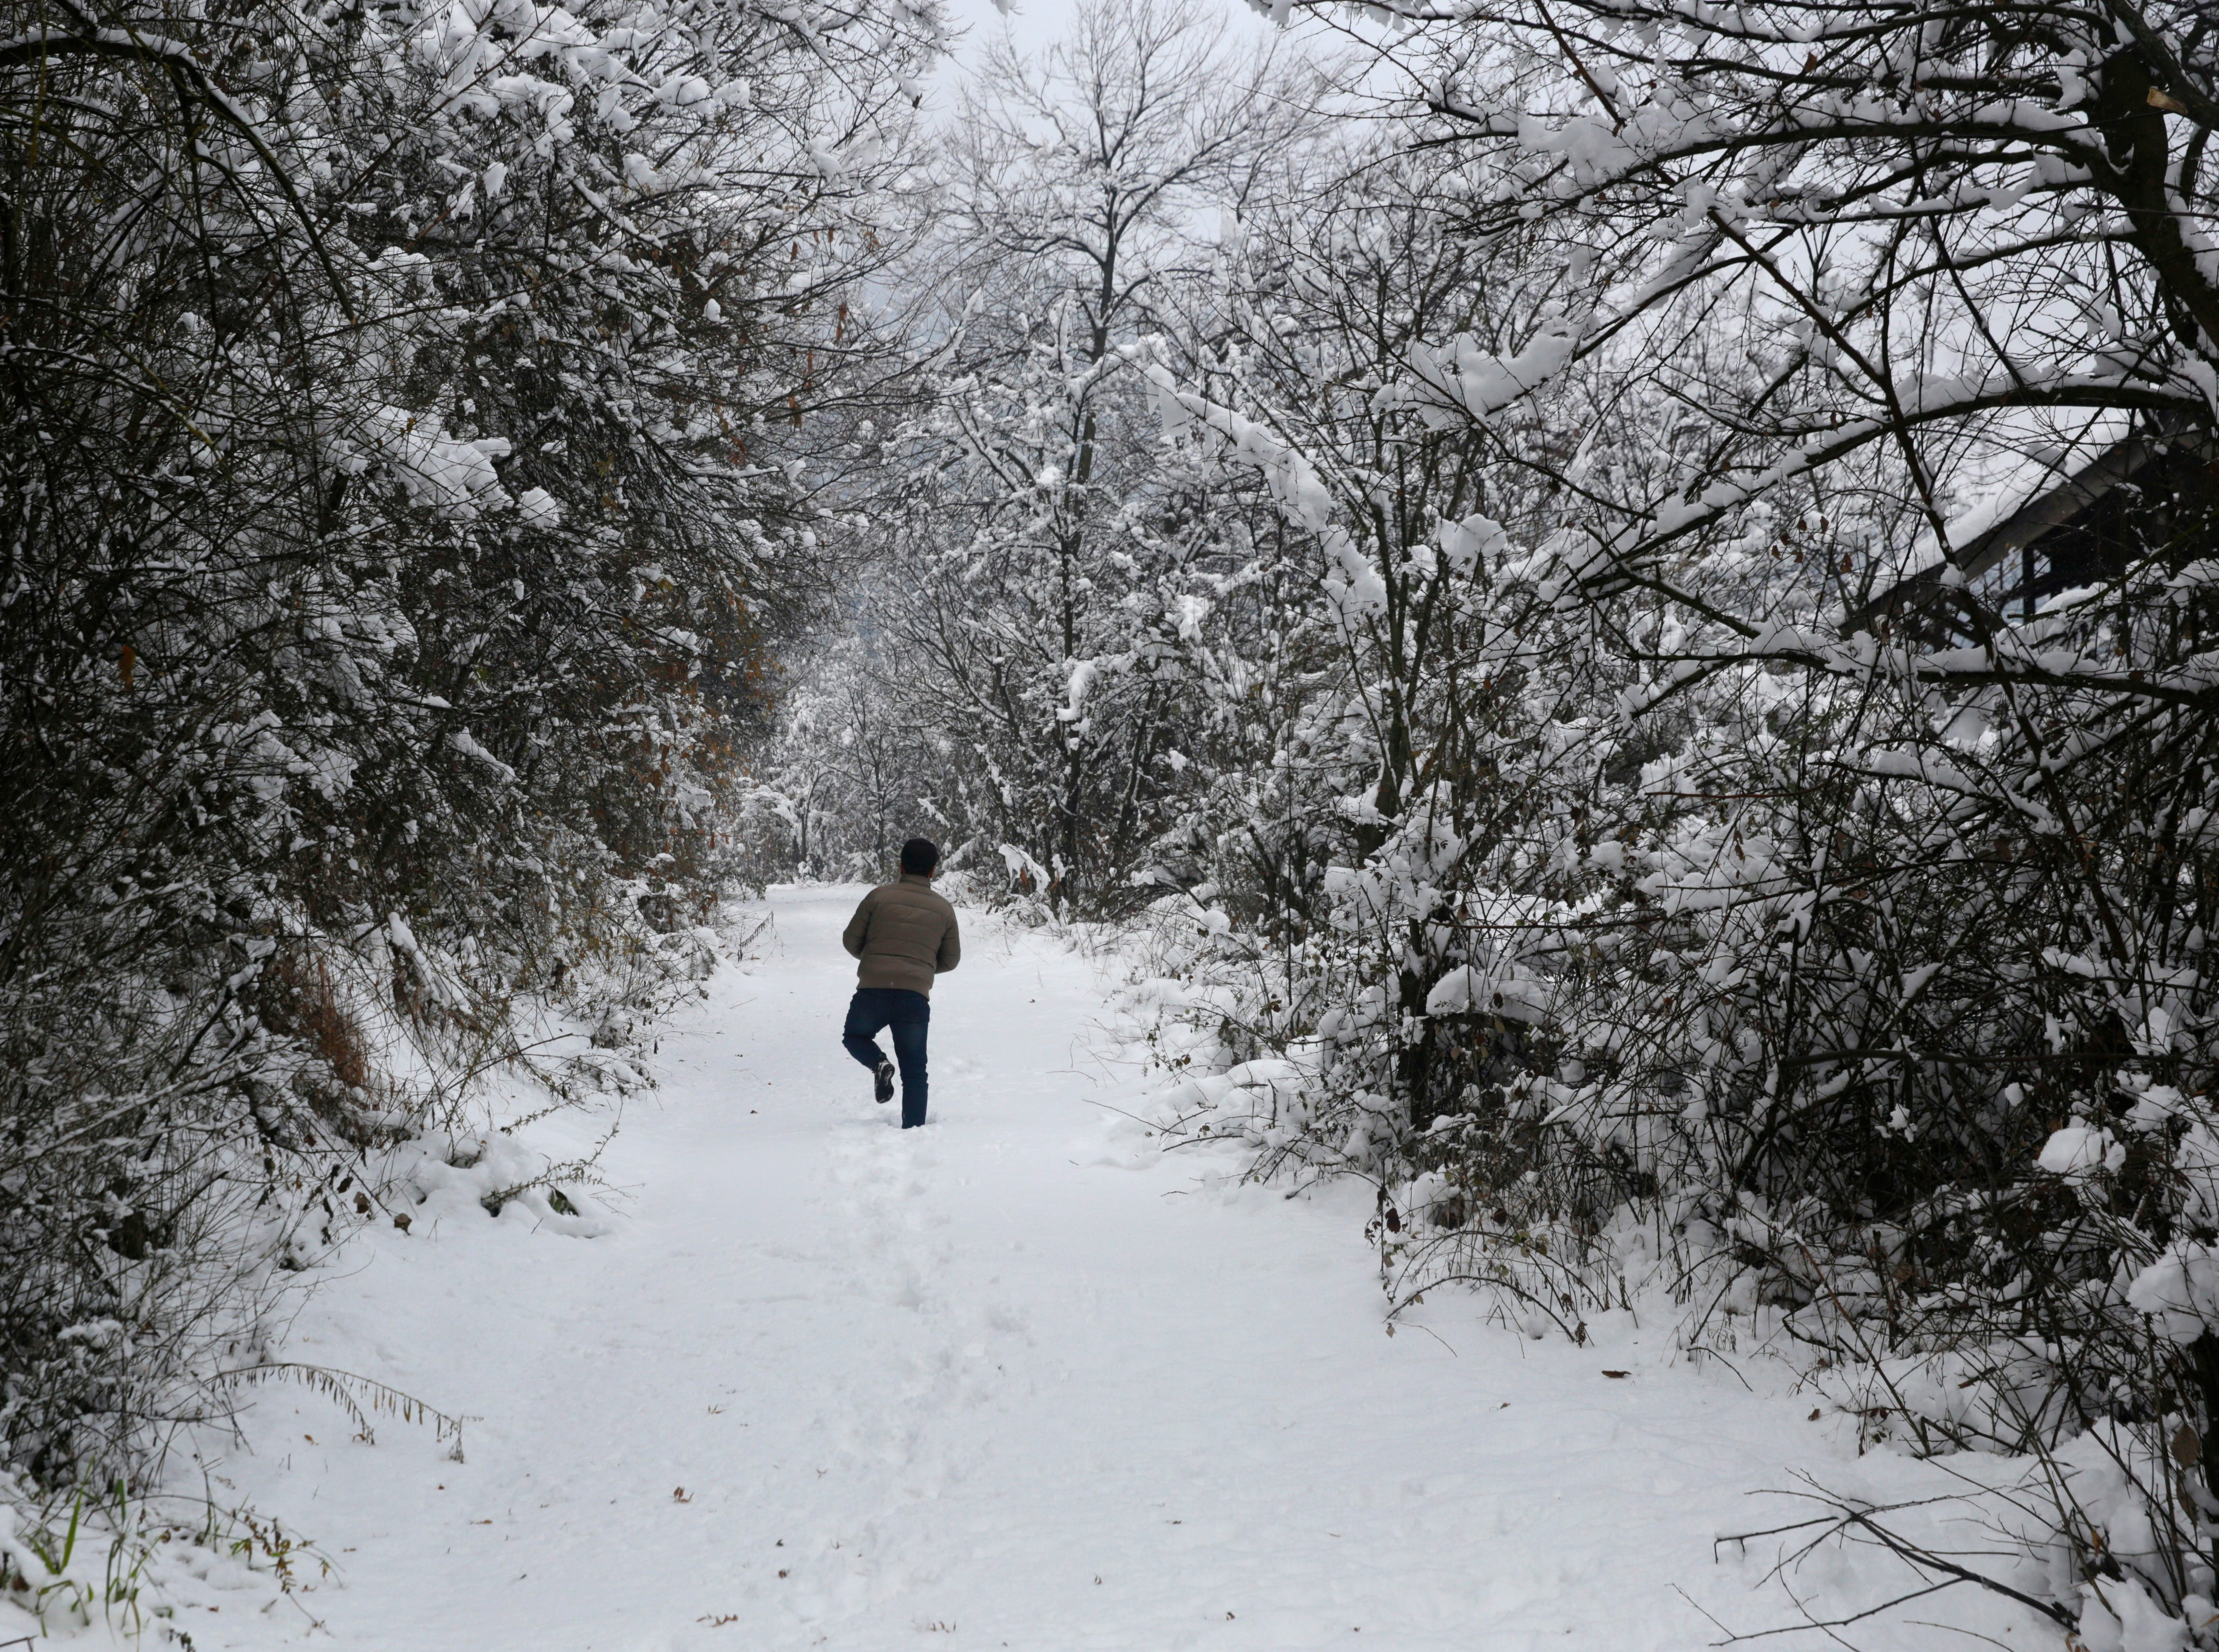 A Kashmiri man walks near snow covered trees and road in Srinagar, the summer capital of Indian Kashmir on Jan. 5, 2019. The strategic Srinagar-Jammu highway was closed for traffic for second consecutive day after snowfall on 04 January. All morning flights were cancelled at Srinagar airport due to poor visibility and snowfall, however air traffic was resumed in the afternoon according to local reports.